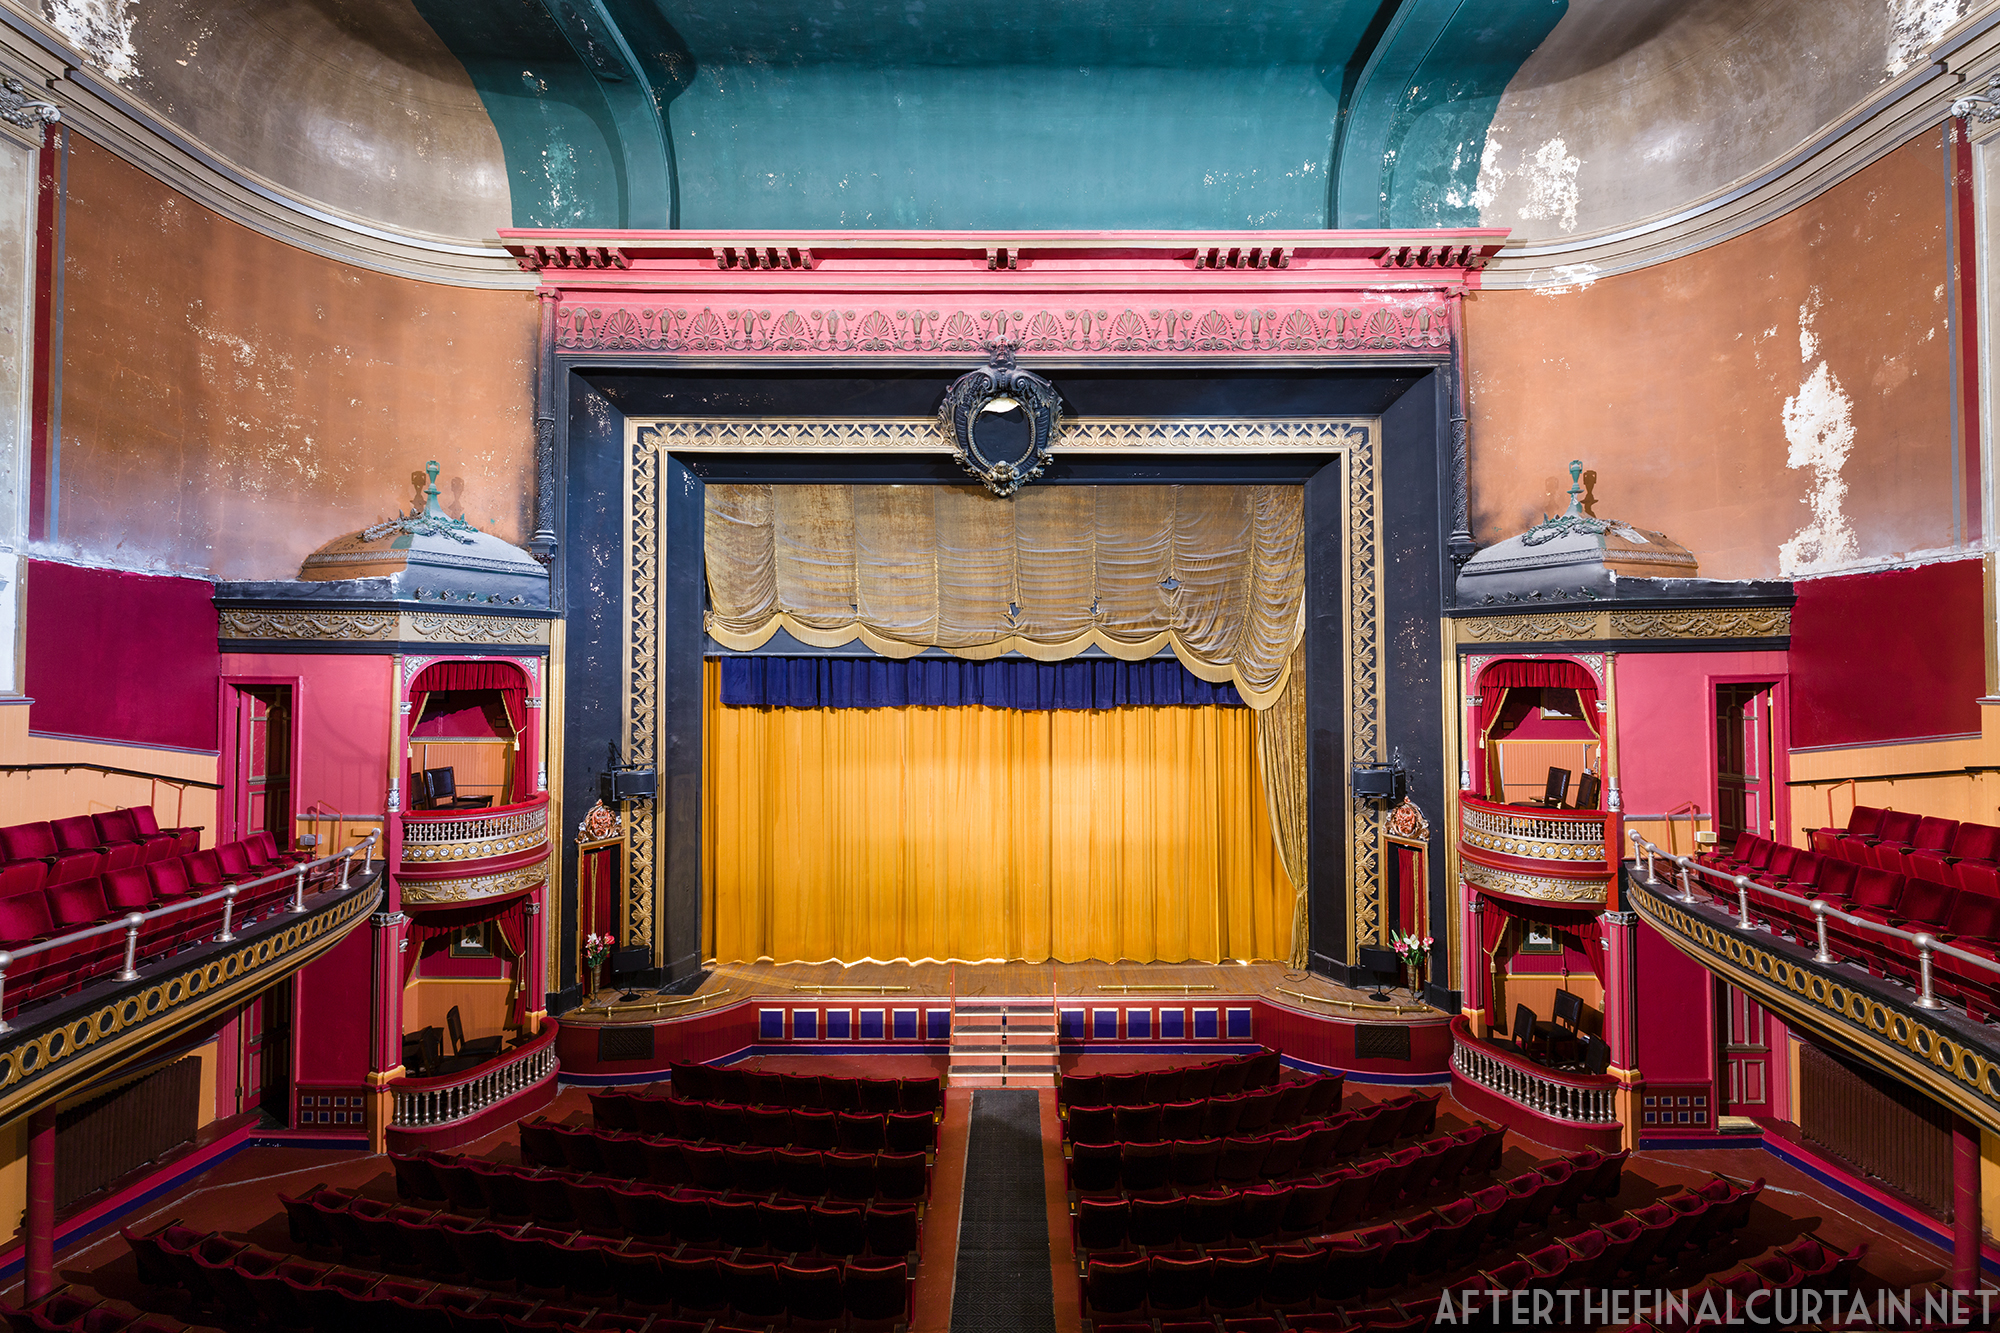 Auditorium, Sorg Opera House - Middletown, Ohio.